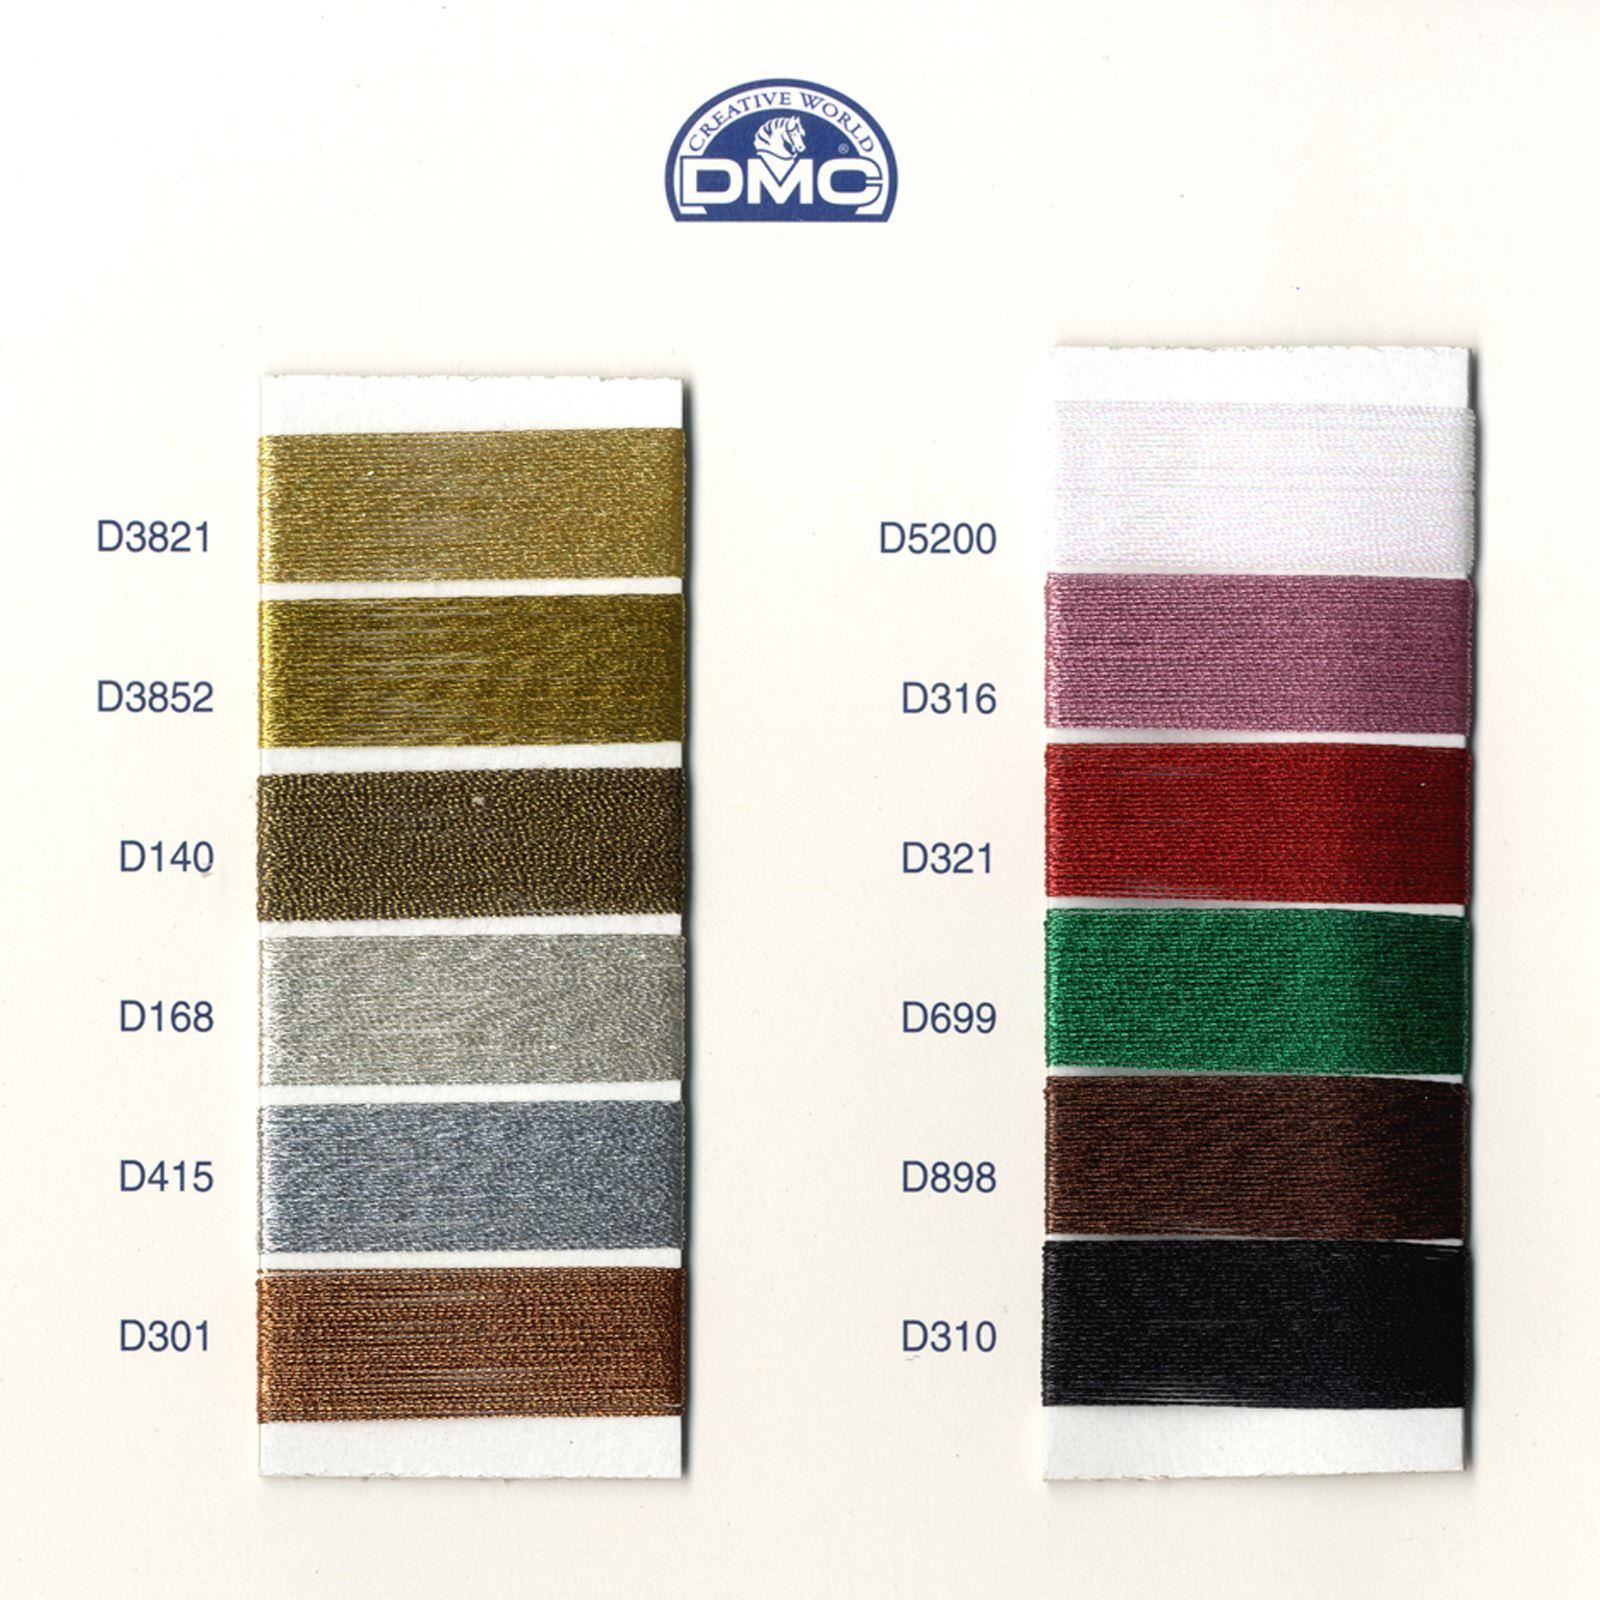 DMC-Diamant-Metallic-Embroidery-Thread-35m-Spool-Cross-Stitch thumbnail 39